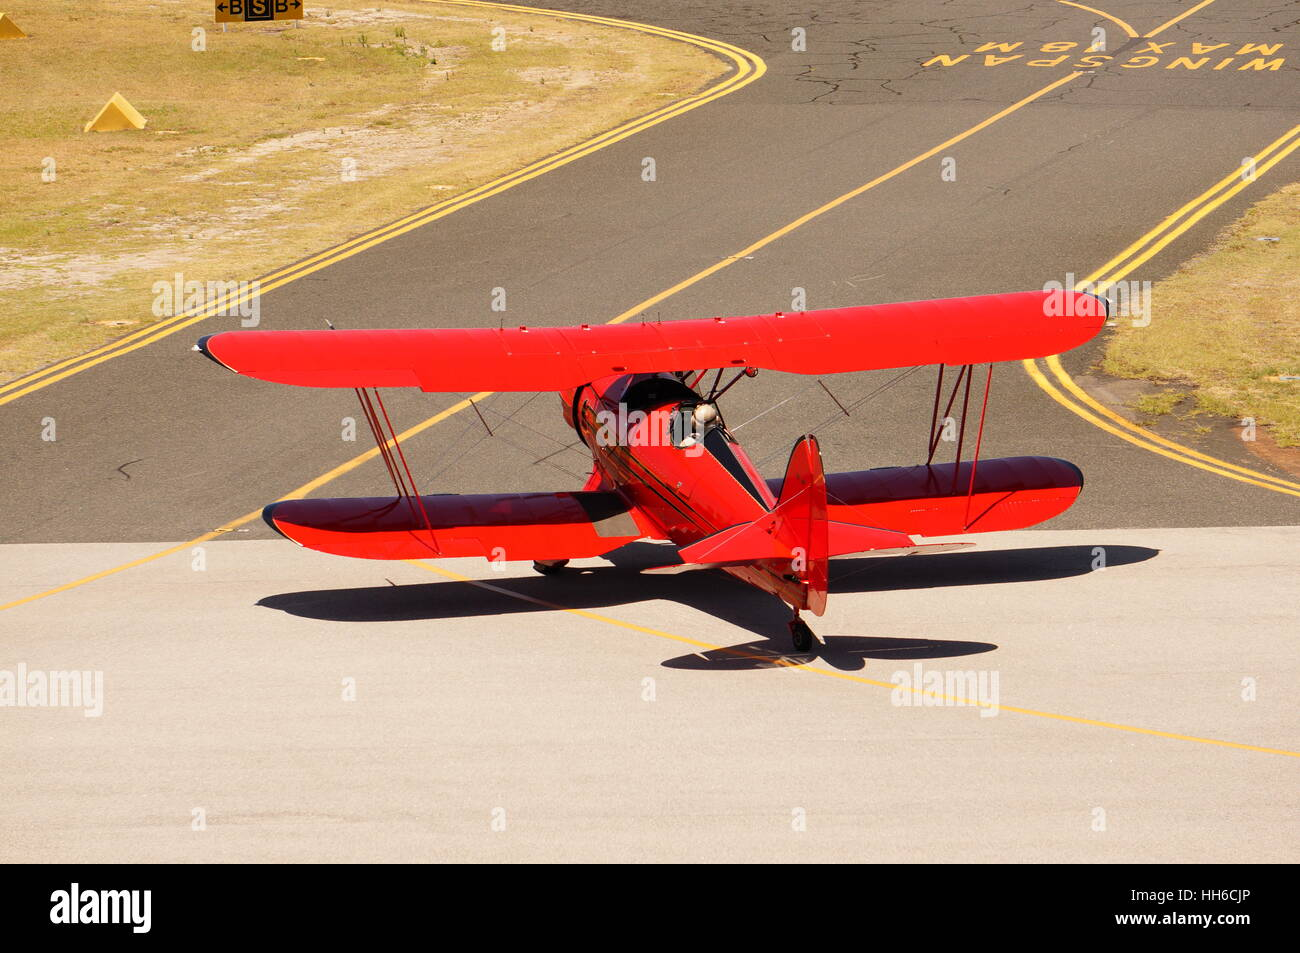 red biplane taxiing - Stock Image